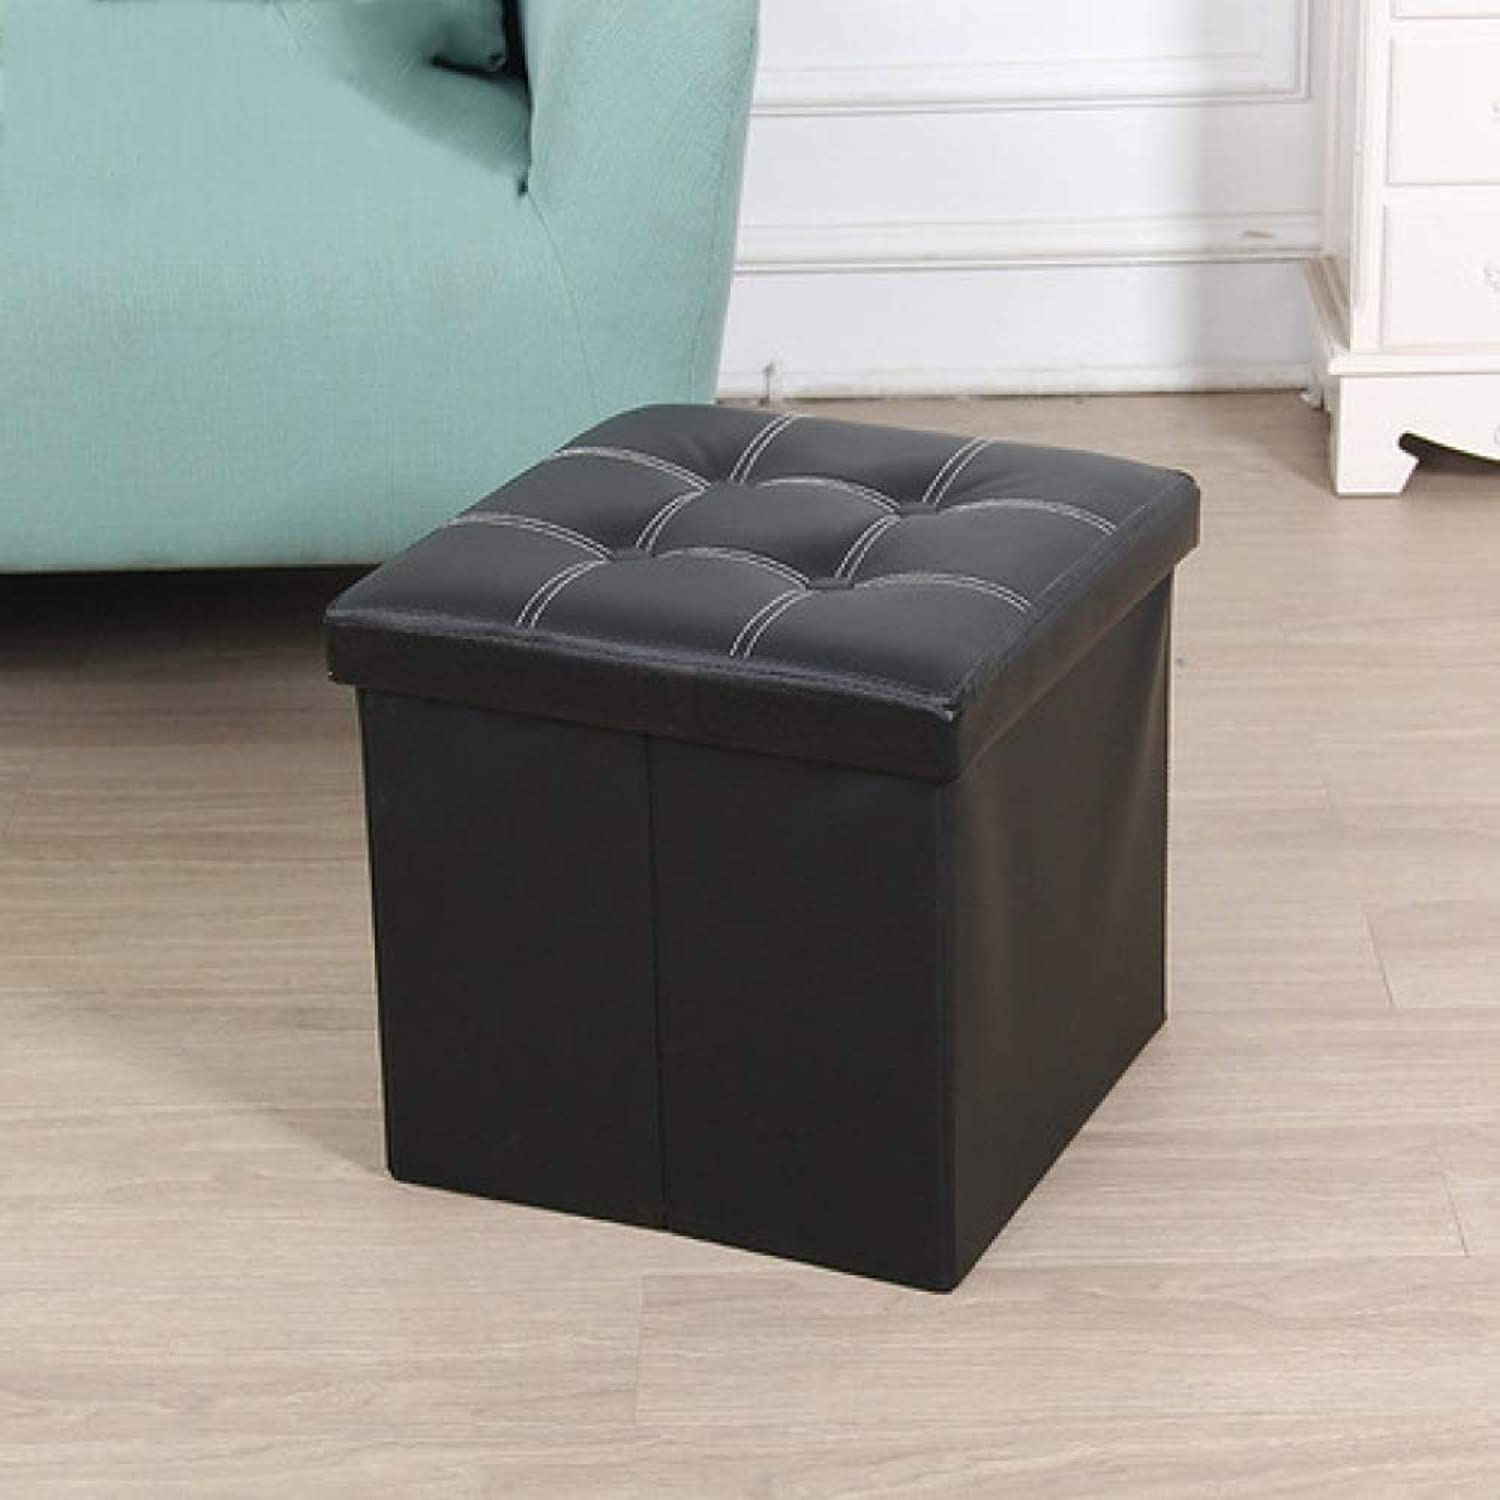 ZhiGe Storage seat,Multi-color Optional for Multifunctional Foldable Storage Bench Change shoes Stool